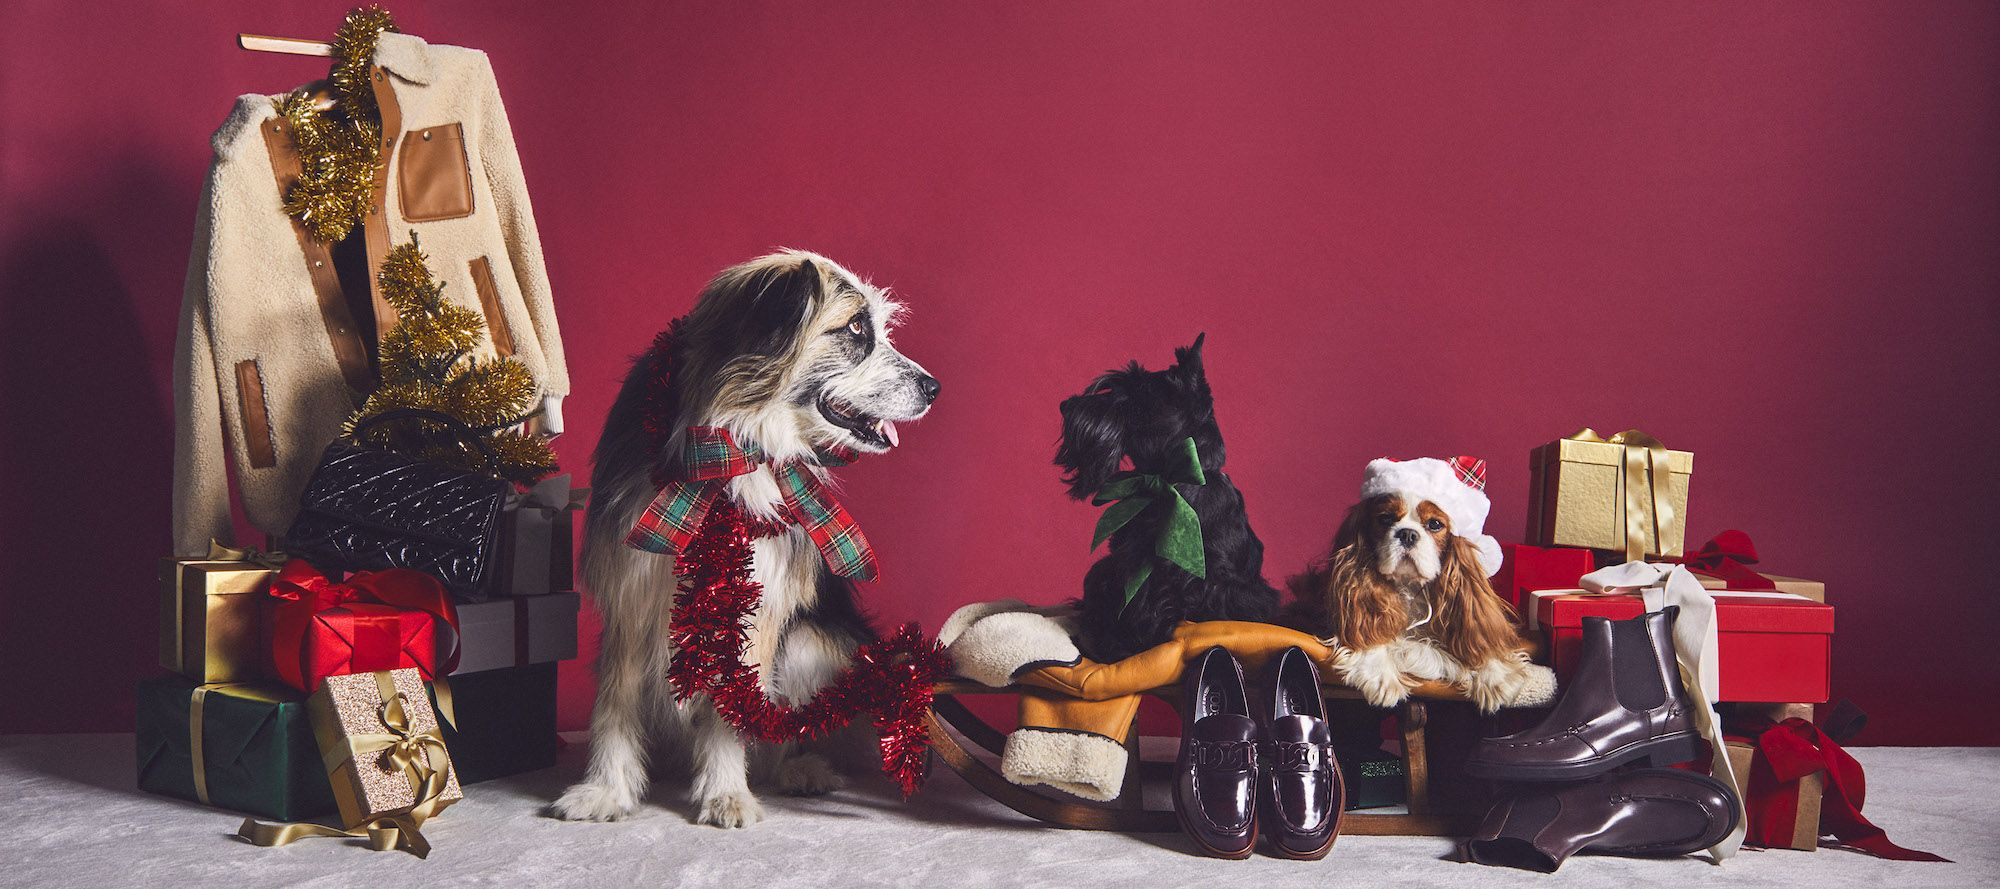 Louis Vuitton, Tod's, Balenciaga, And More: Fashion Houses Create The Paw-fect Holiday Campaign With Dogs